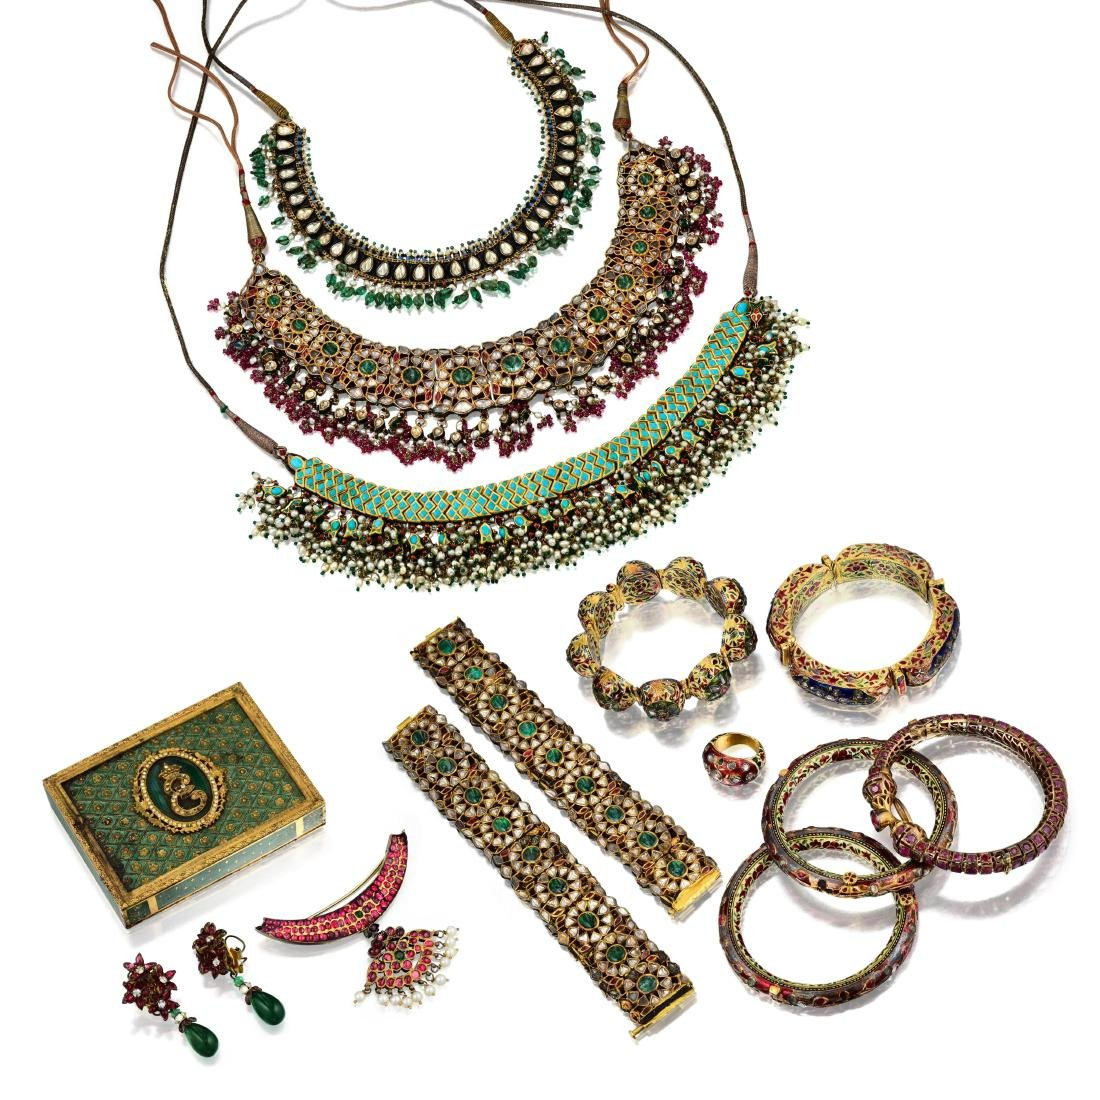 A Group of Indian Jewelry and Enamel Box